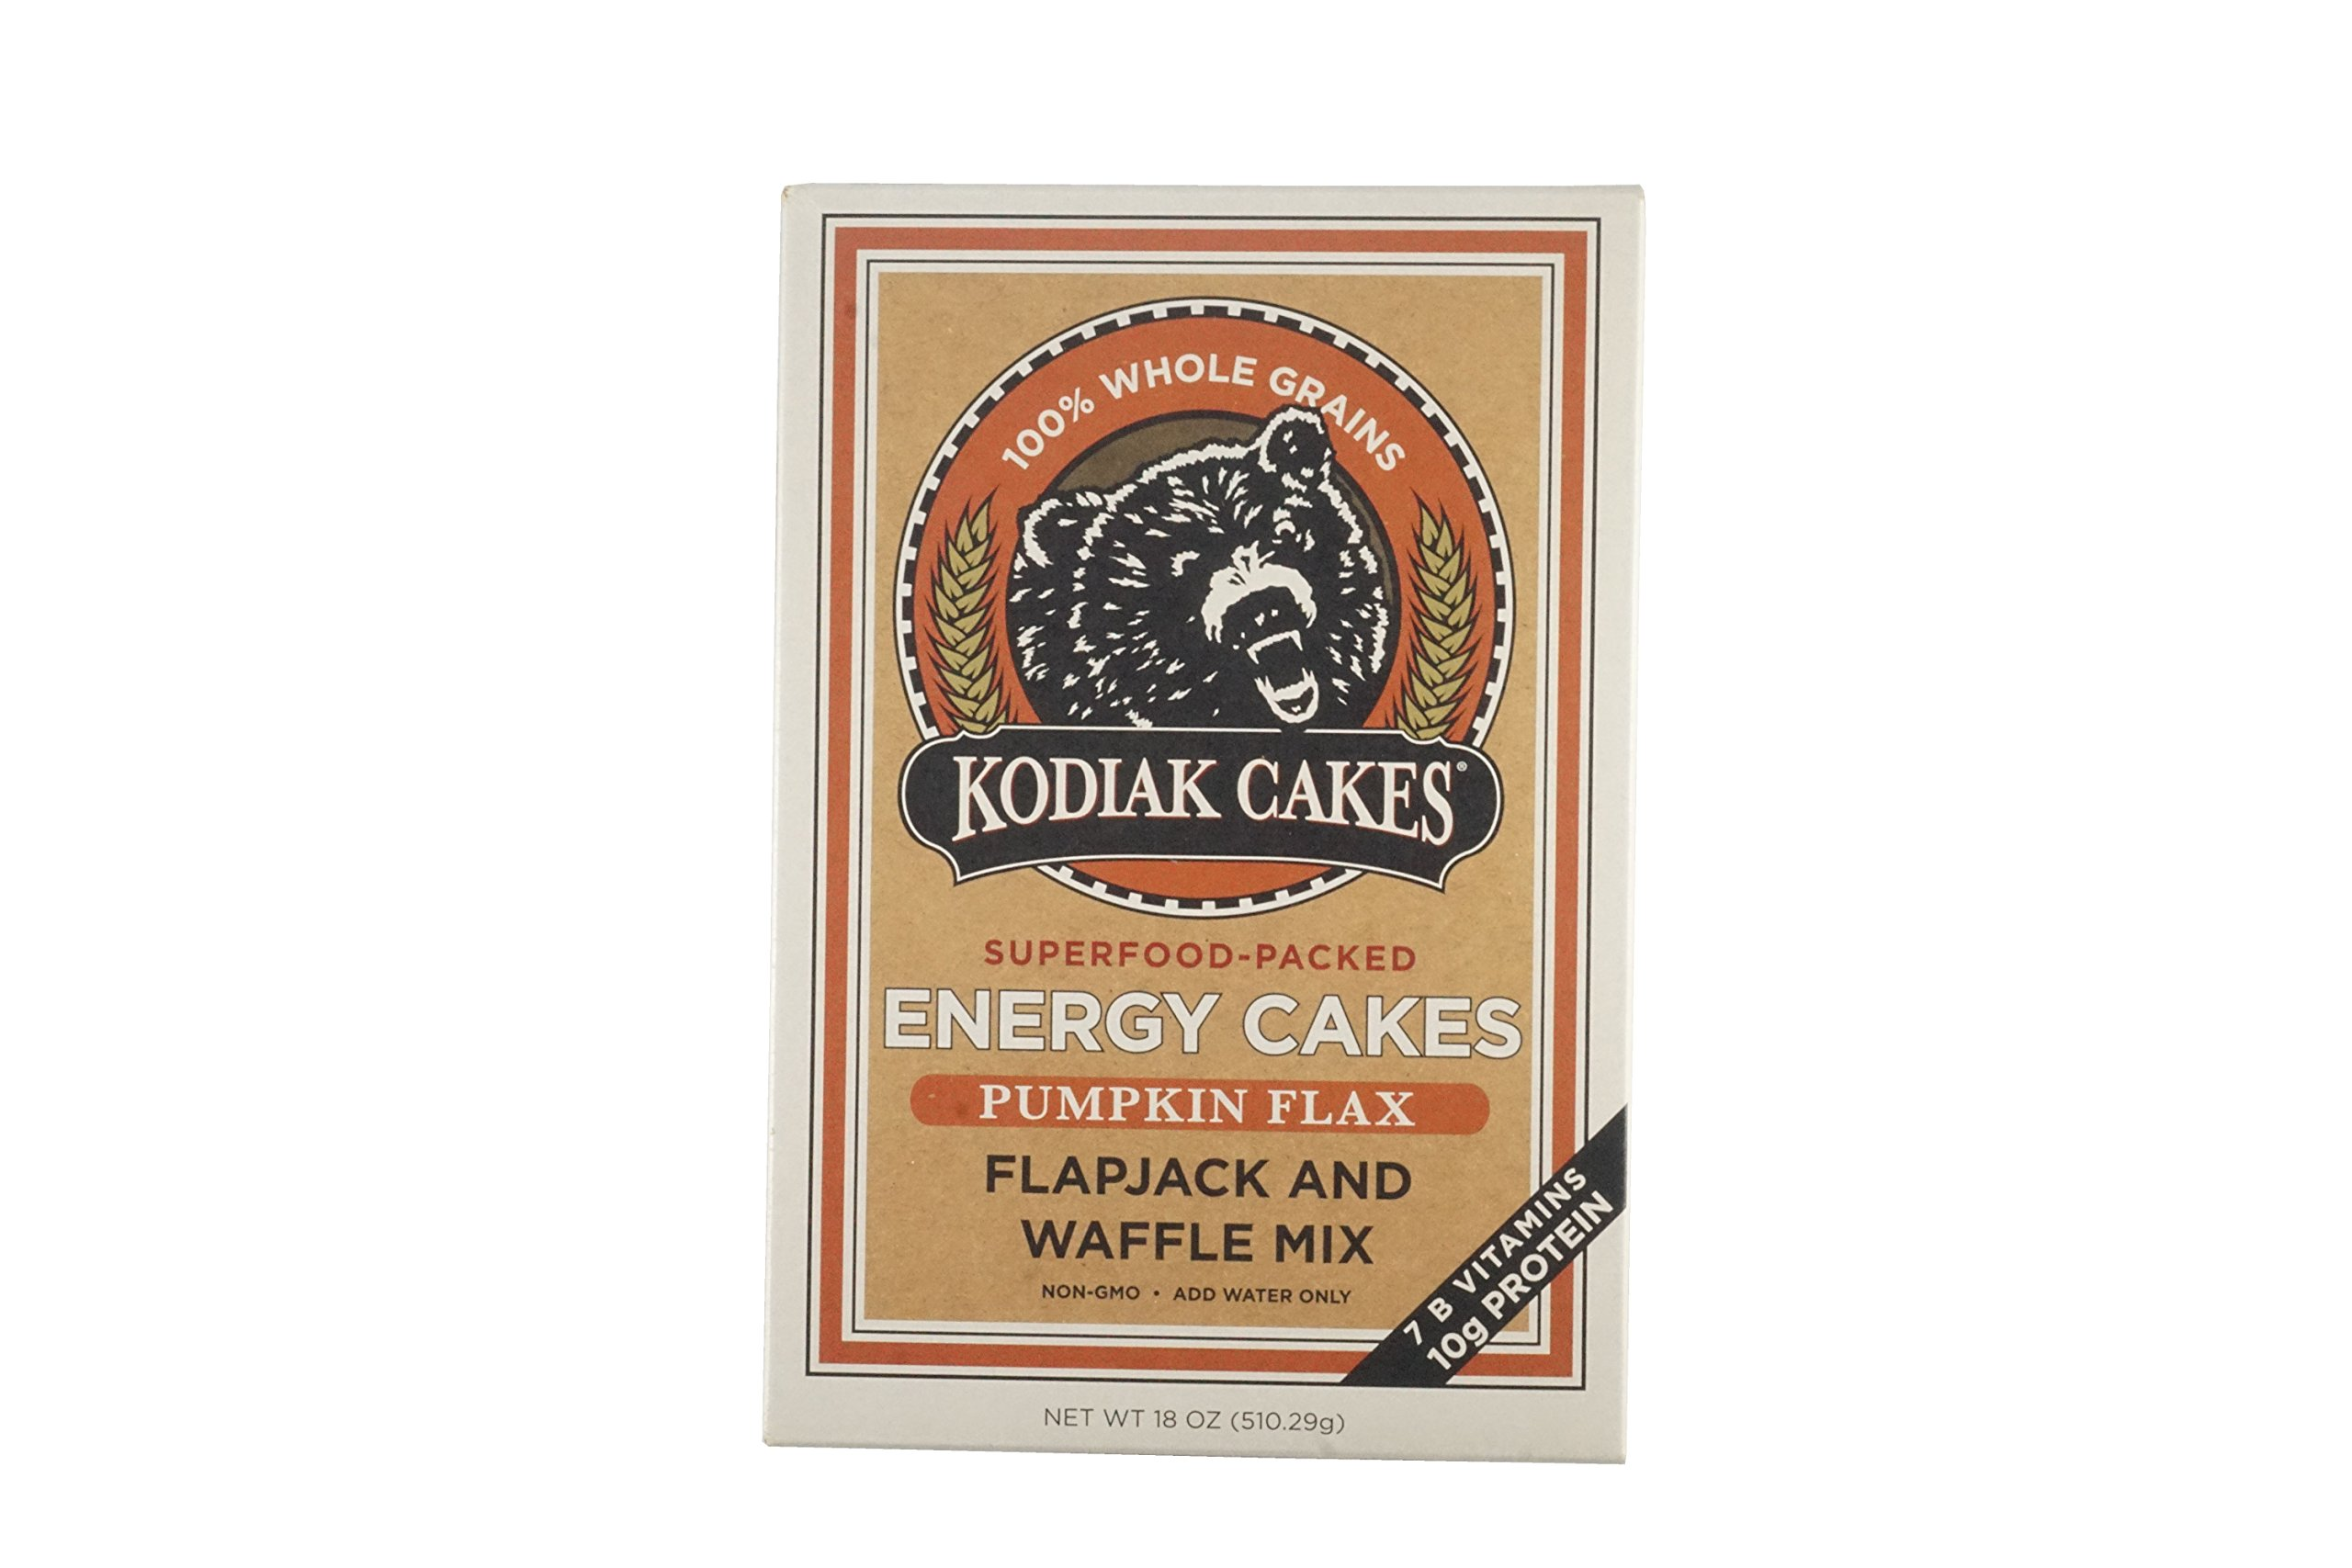 Kodiak Cakes With Pumpkin